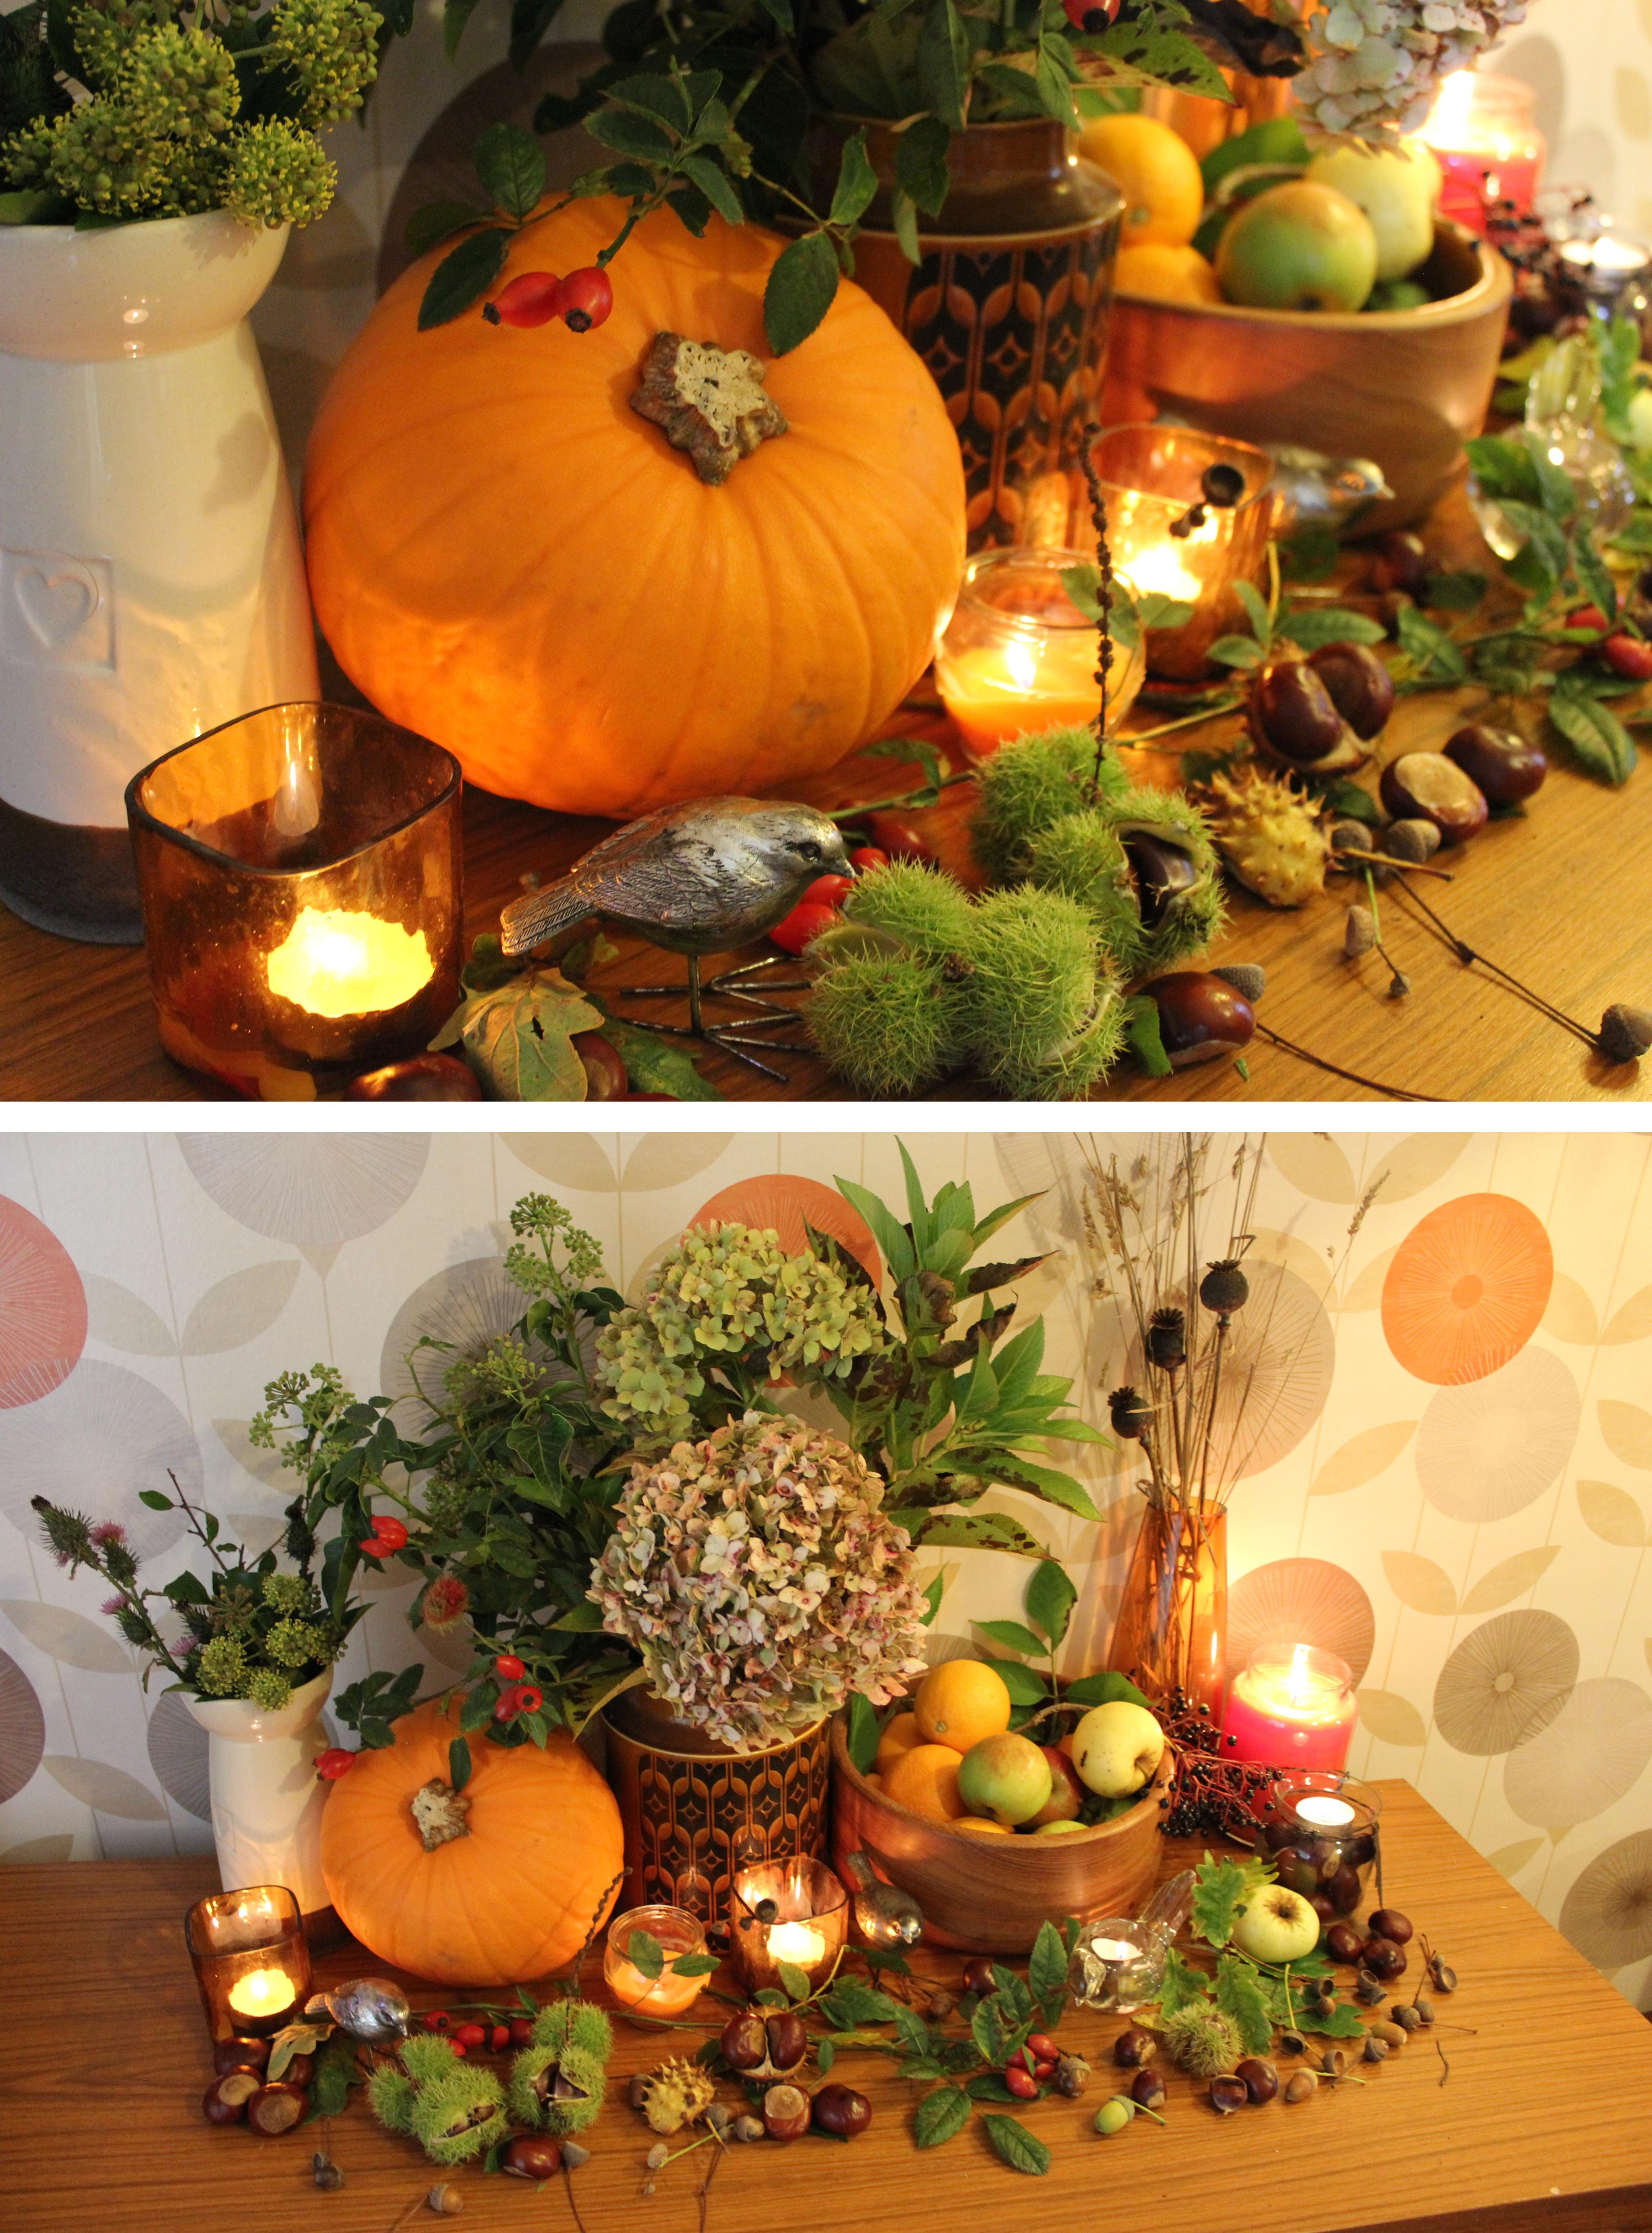 Decorating Around Harvest Gold Bathroom: Harvest Decorations In My Home